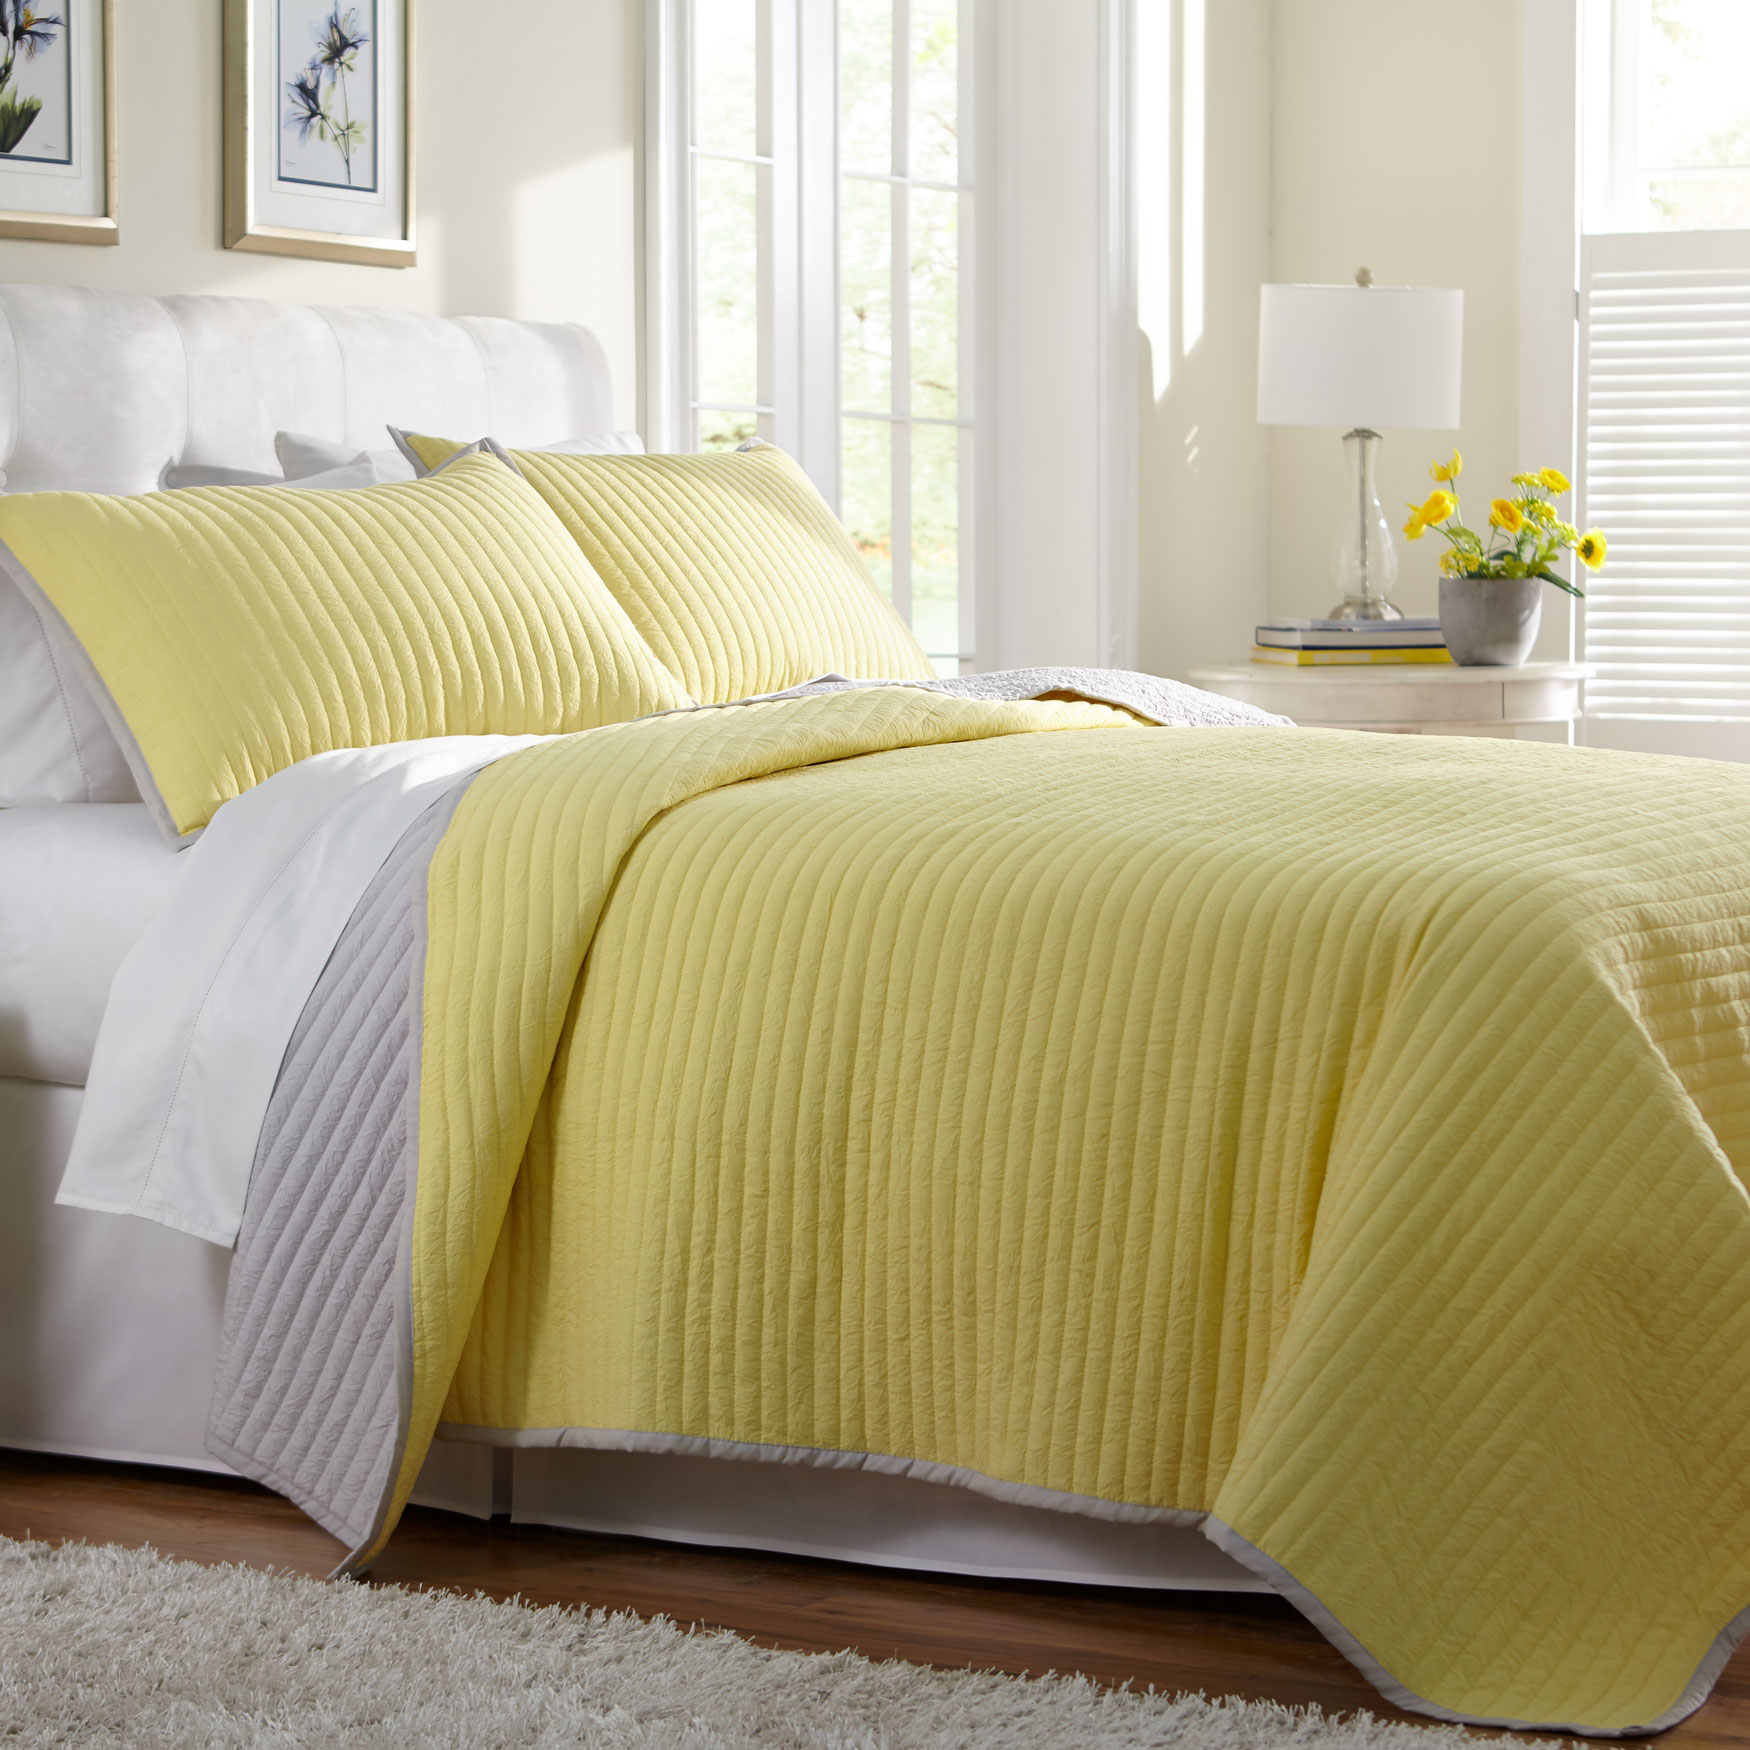 Marlow Crinkle Quilt,